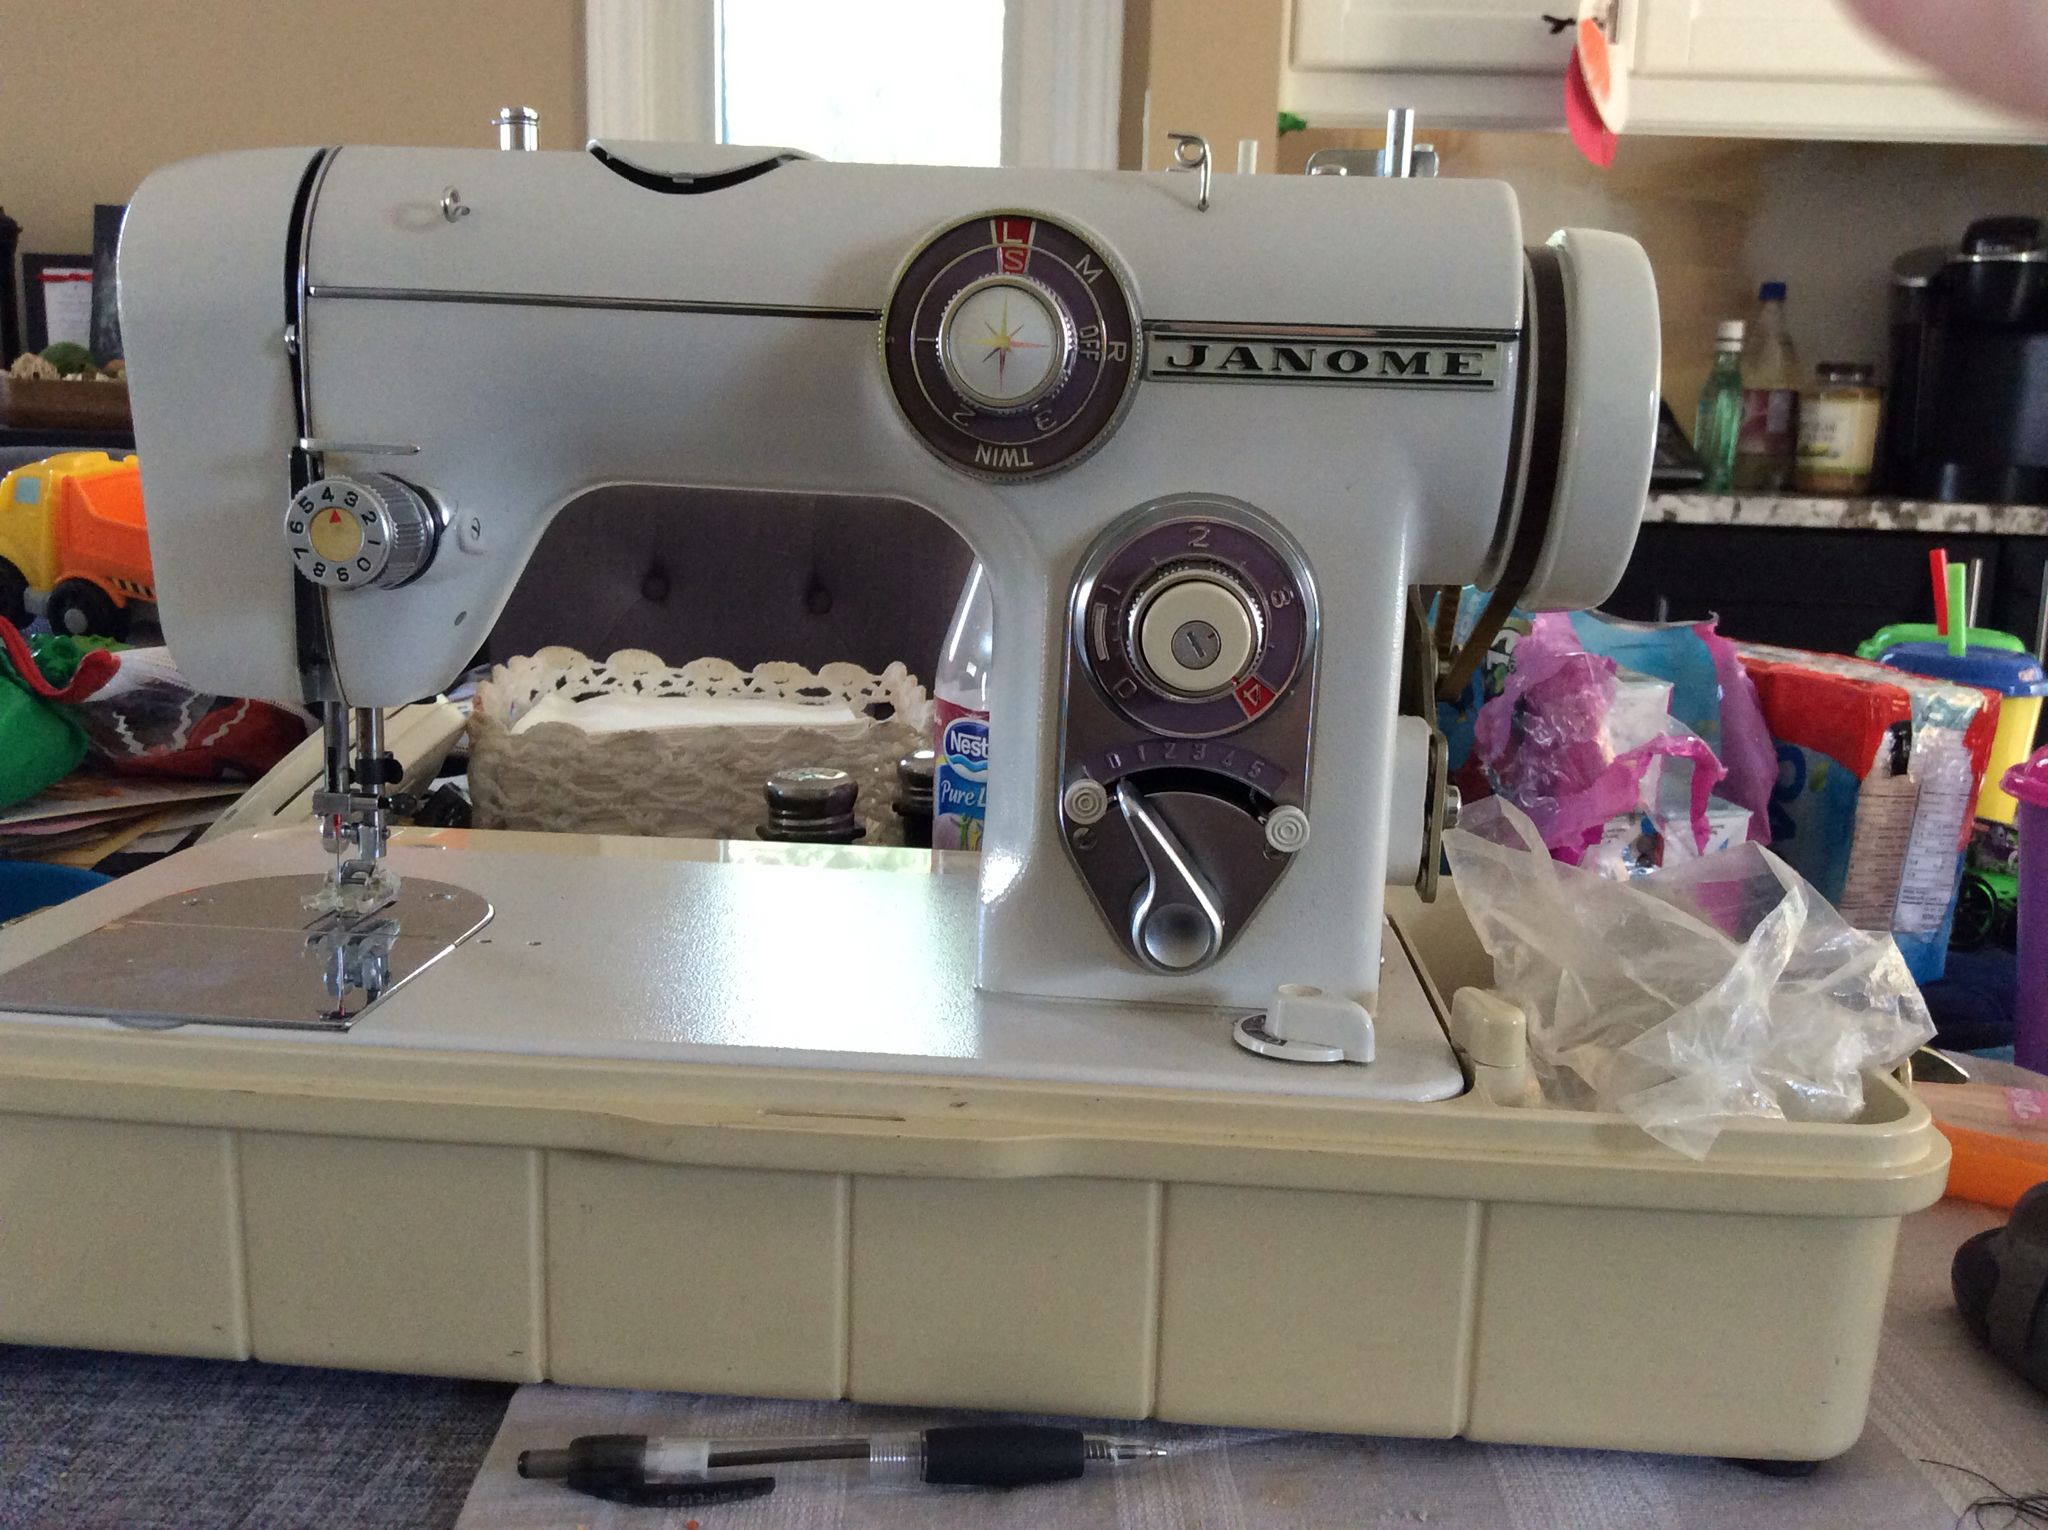 Newly acquired Janome New Home vintage sewing machine model ... on